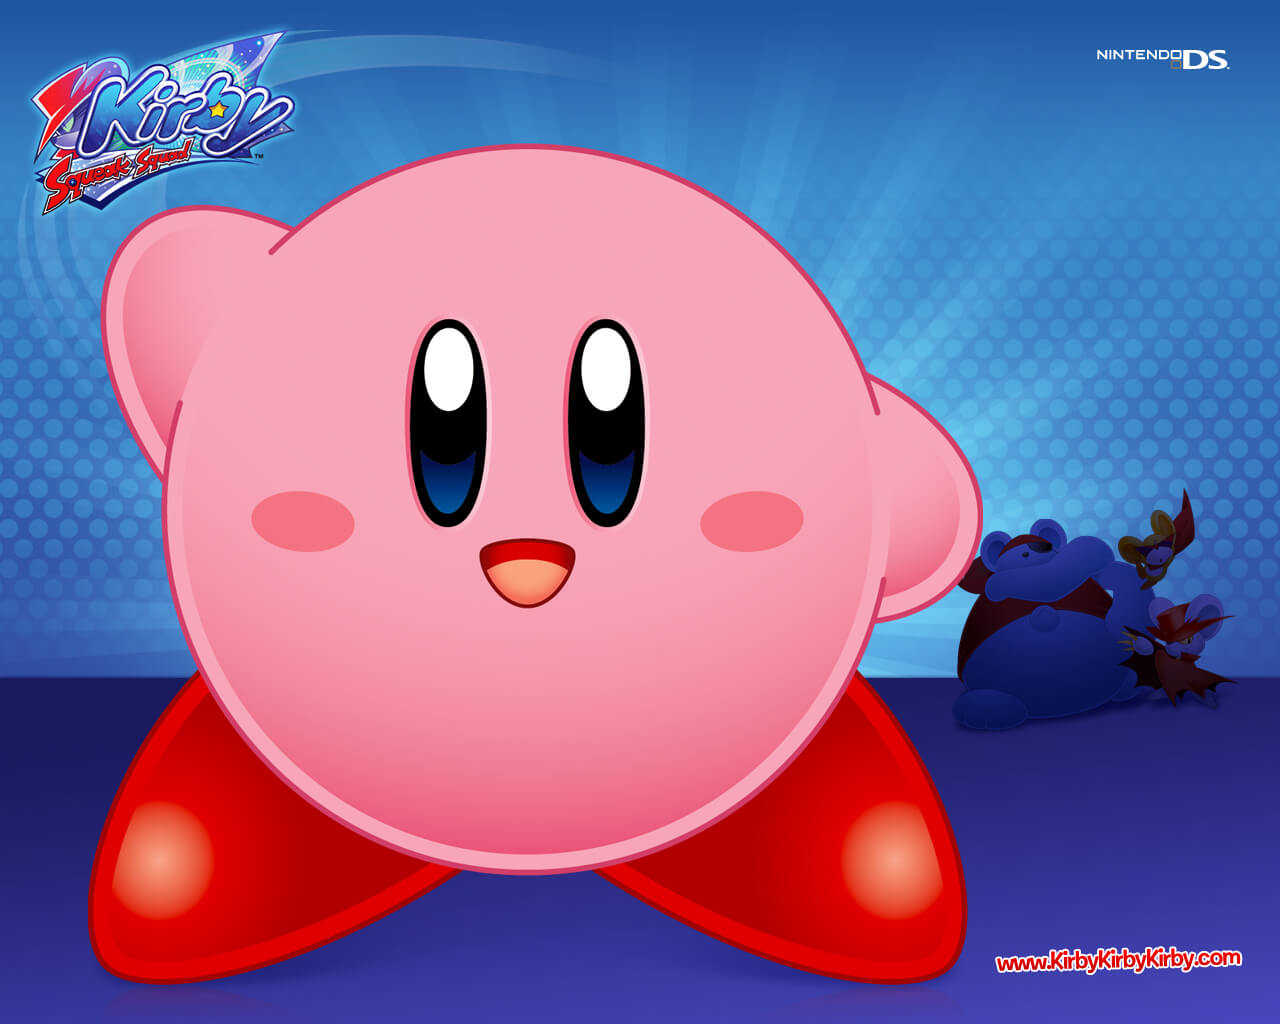 Awesome Kirby Background